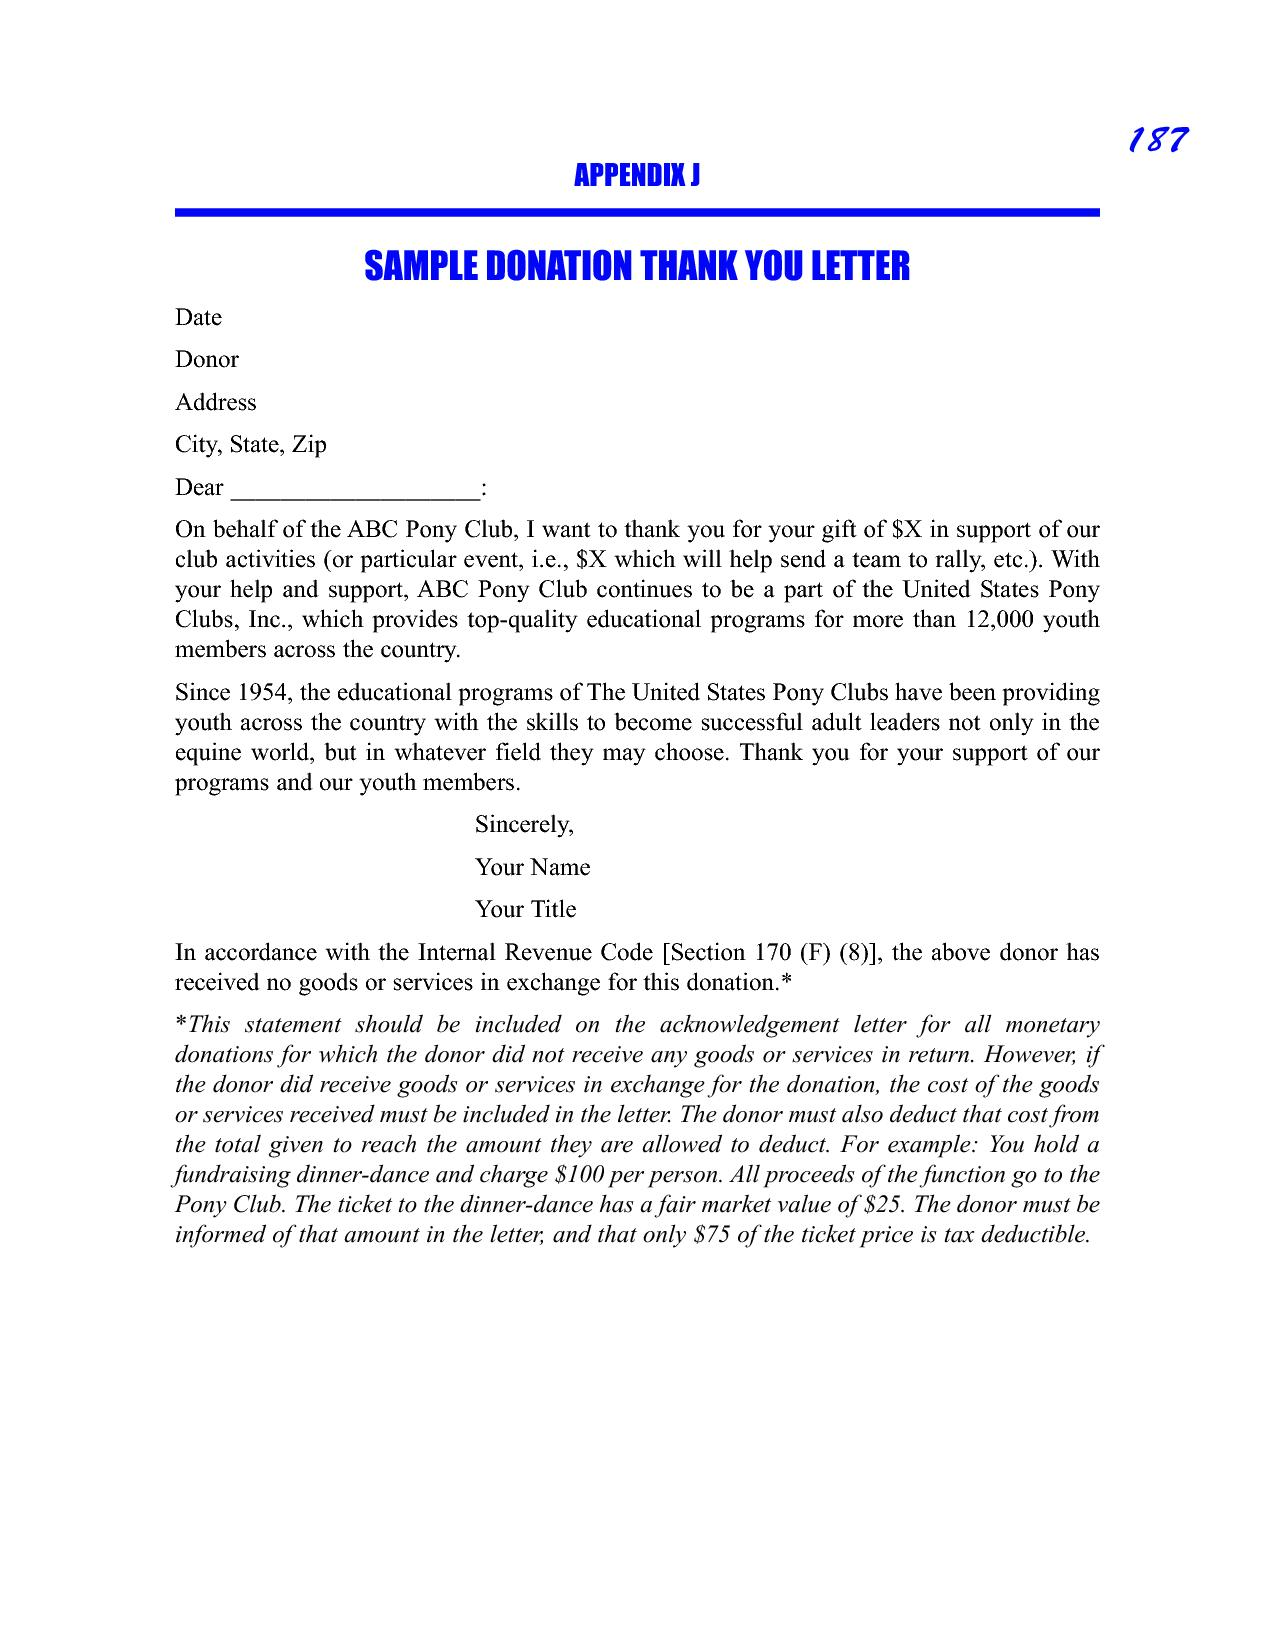 Charitable Donation Tax Letter Template